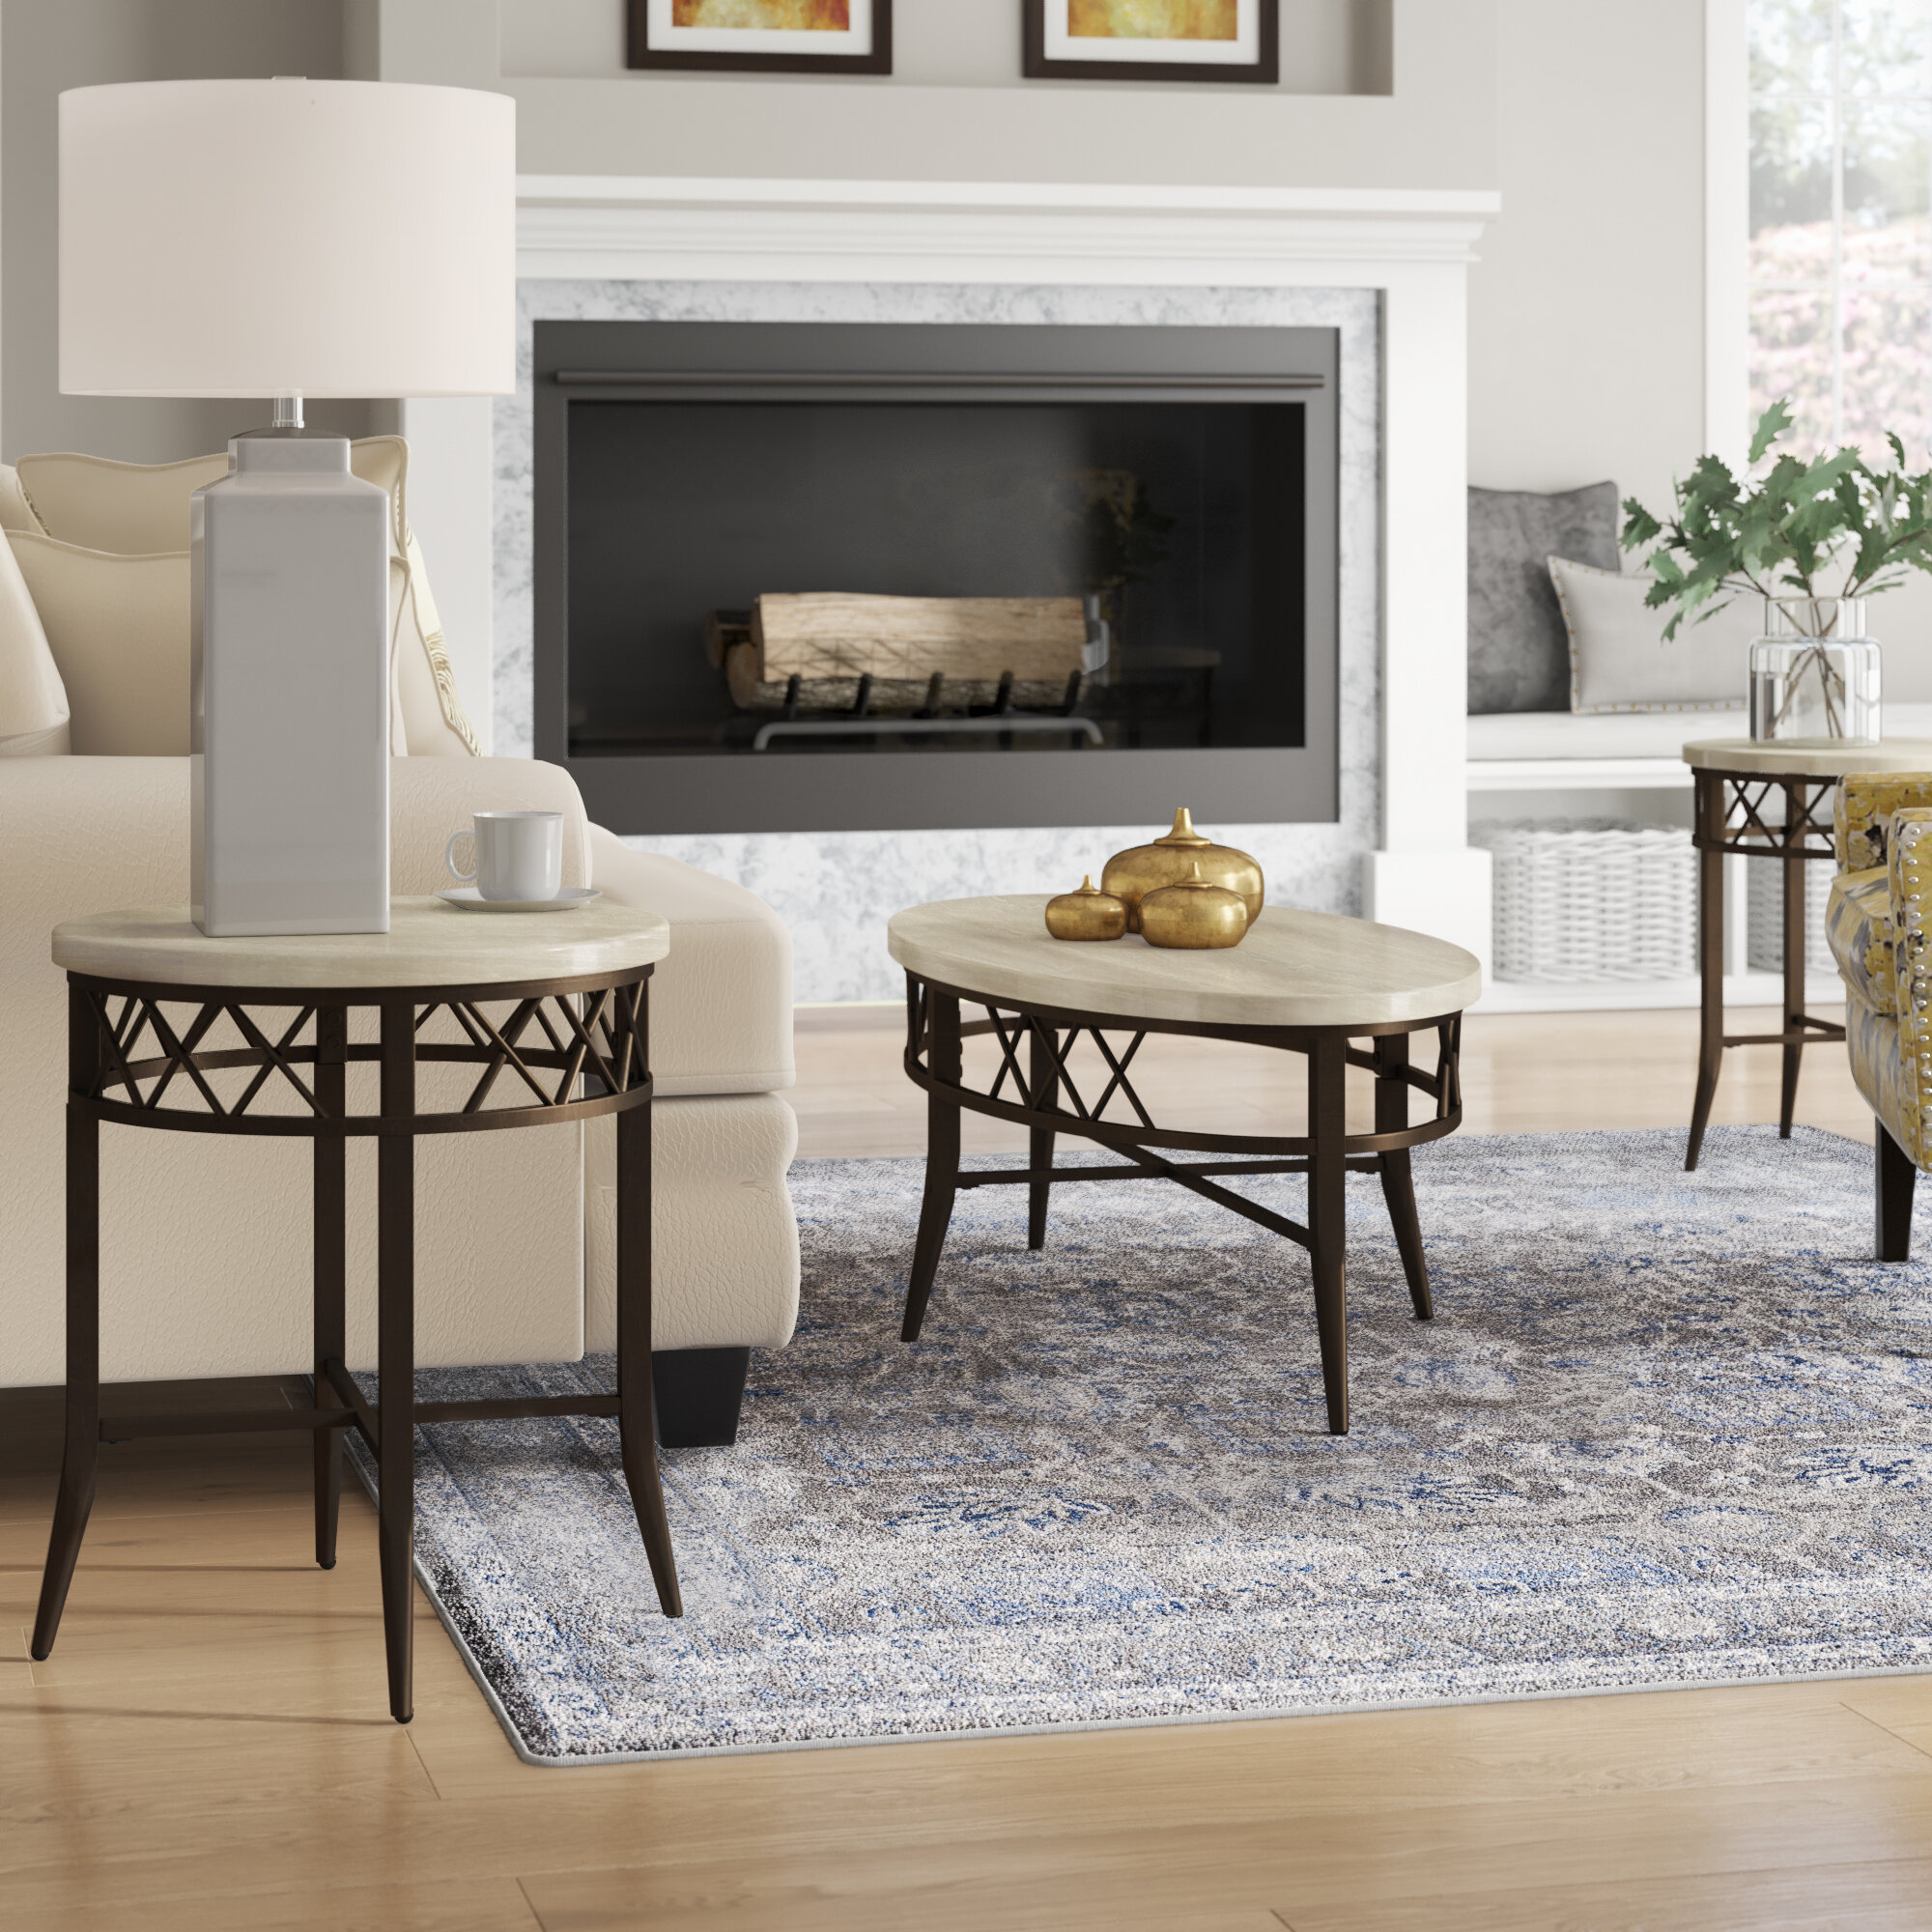 Bedfordshire 11 Piece Coffee Table Set